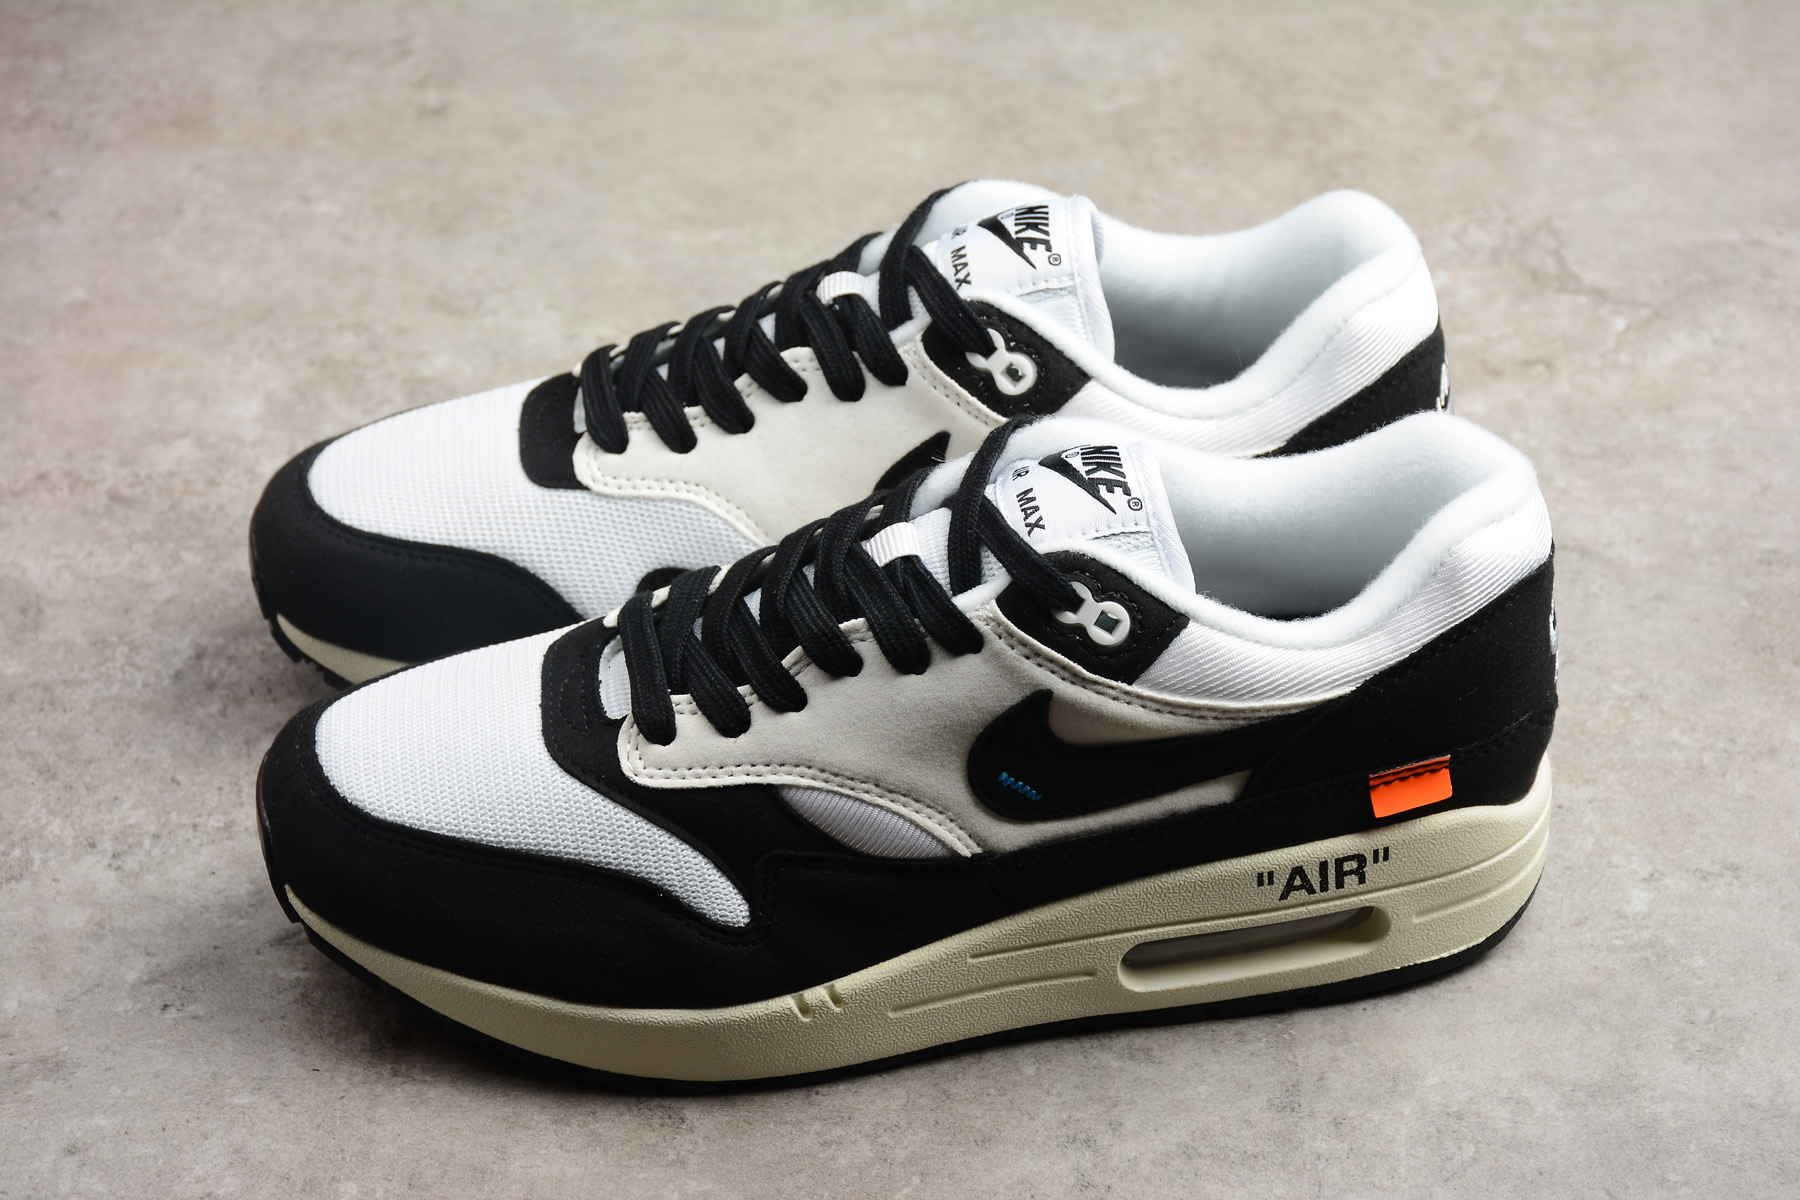 Cheap Off White x Nike Air Max 1 White Black AJ9986 109 For